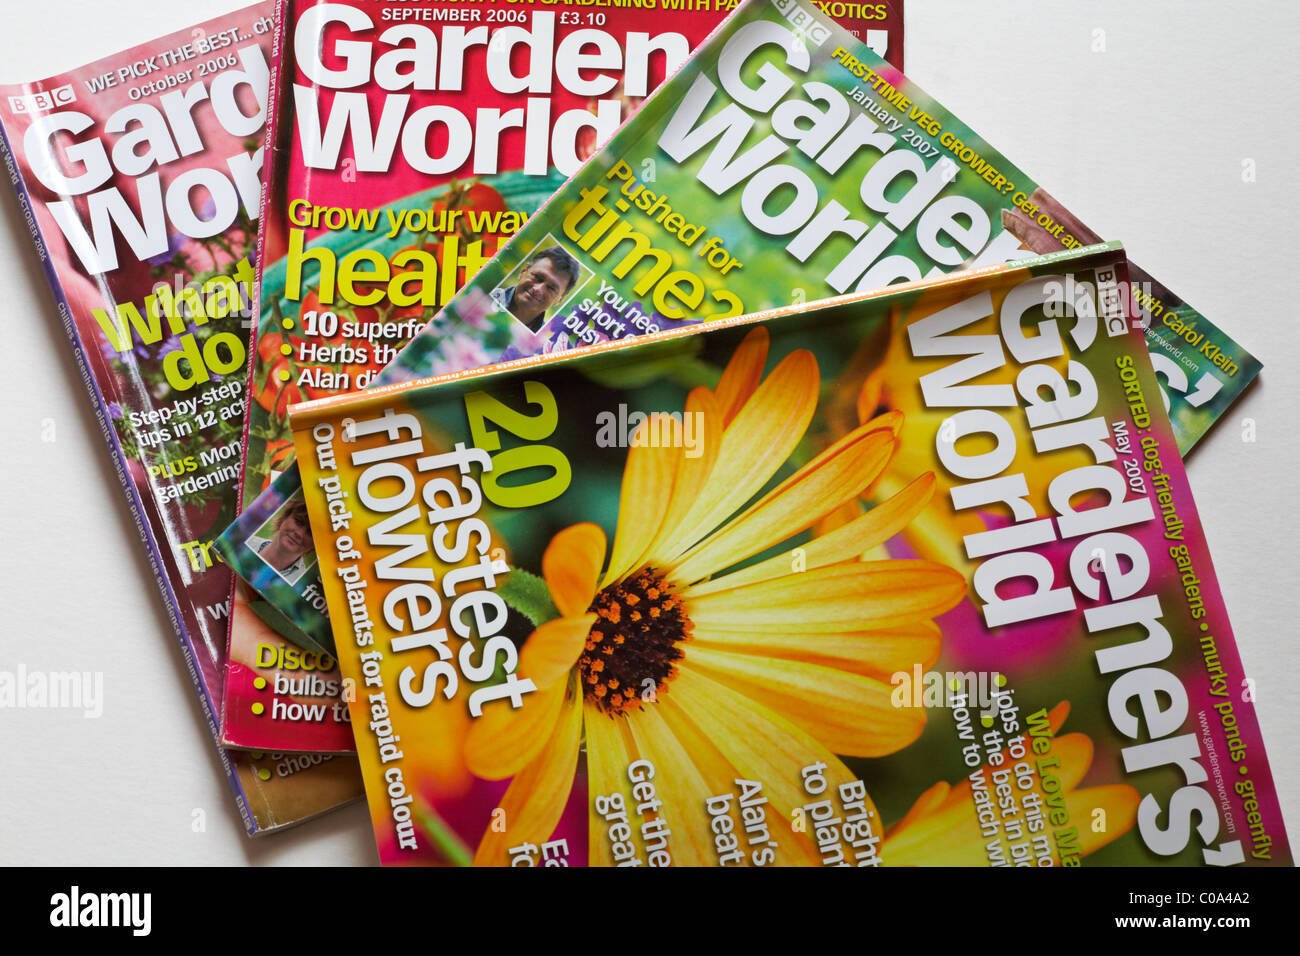 homes decoration magazines subscription gardening superb green and voqalmediacom uk garden gallery brooklyn landscape eco home outdoor magazine